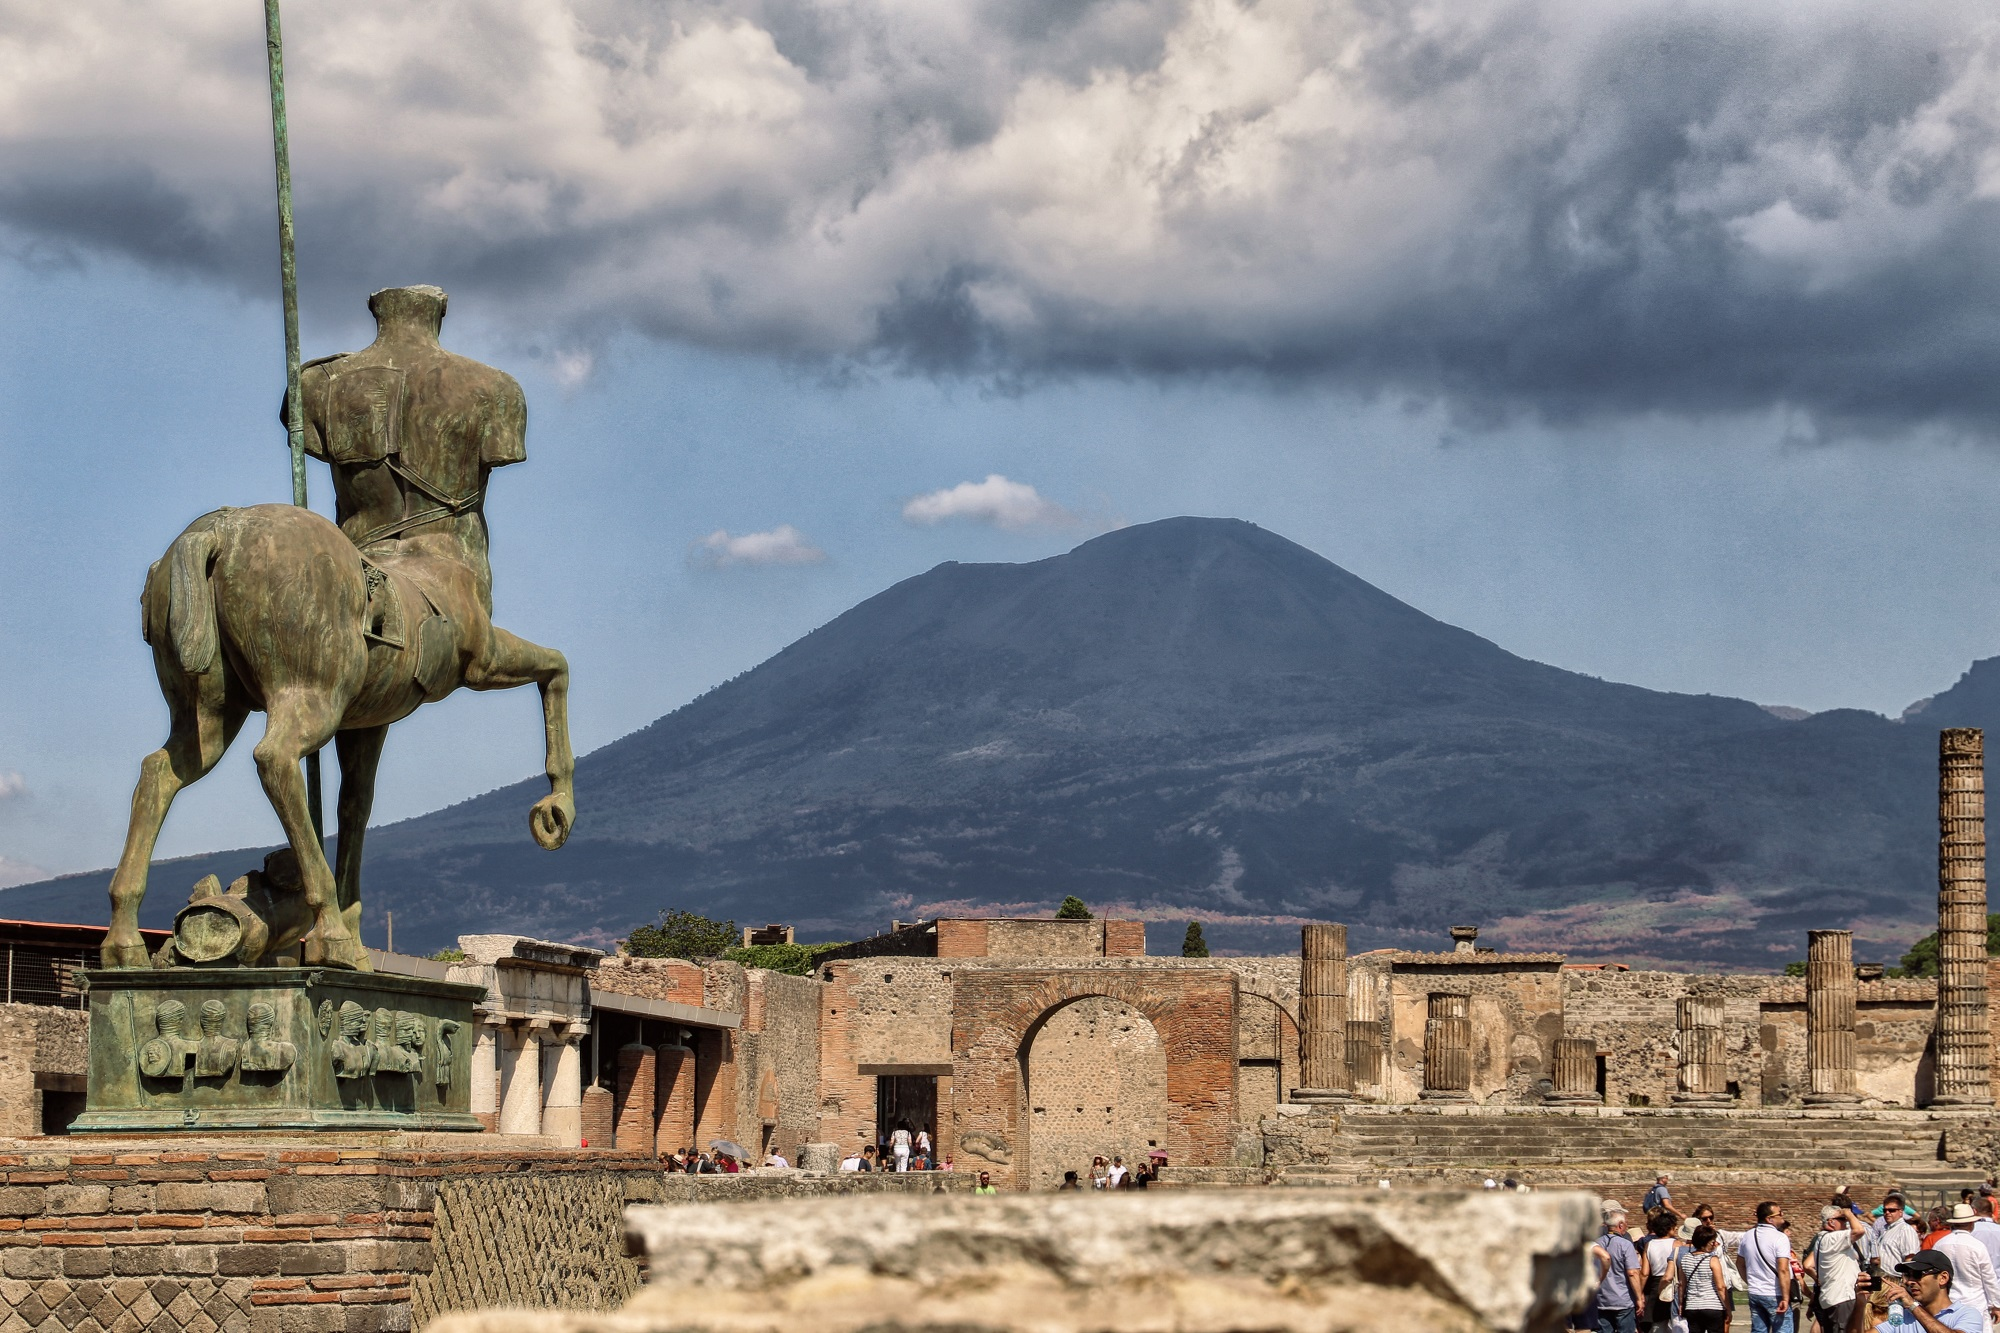 The Best Sights to See in Pompeii